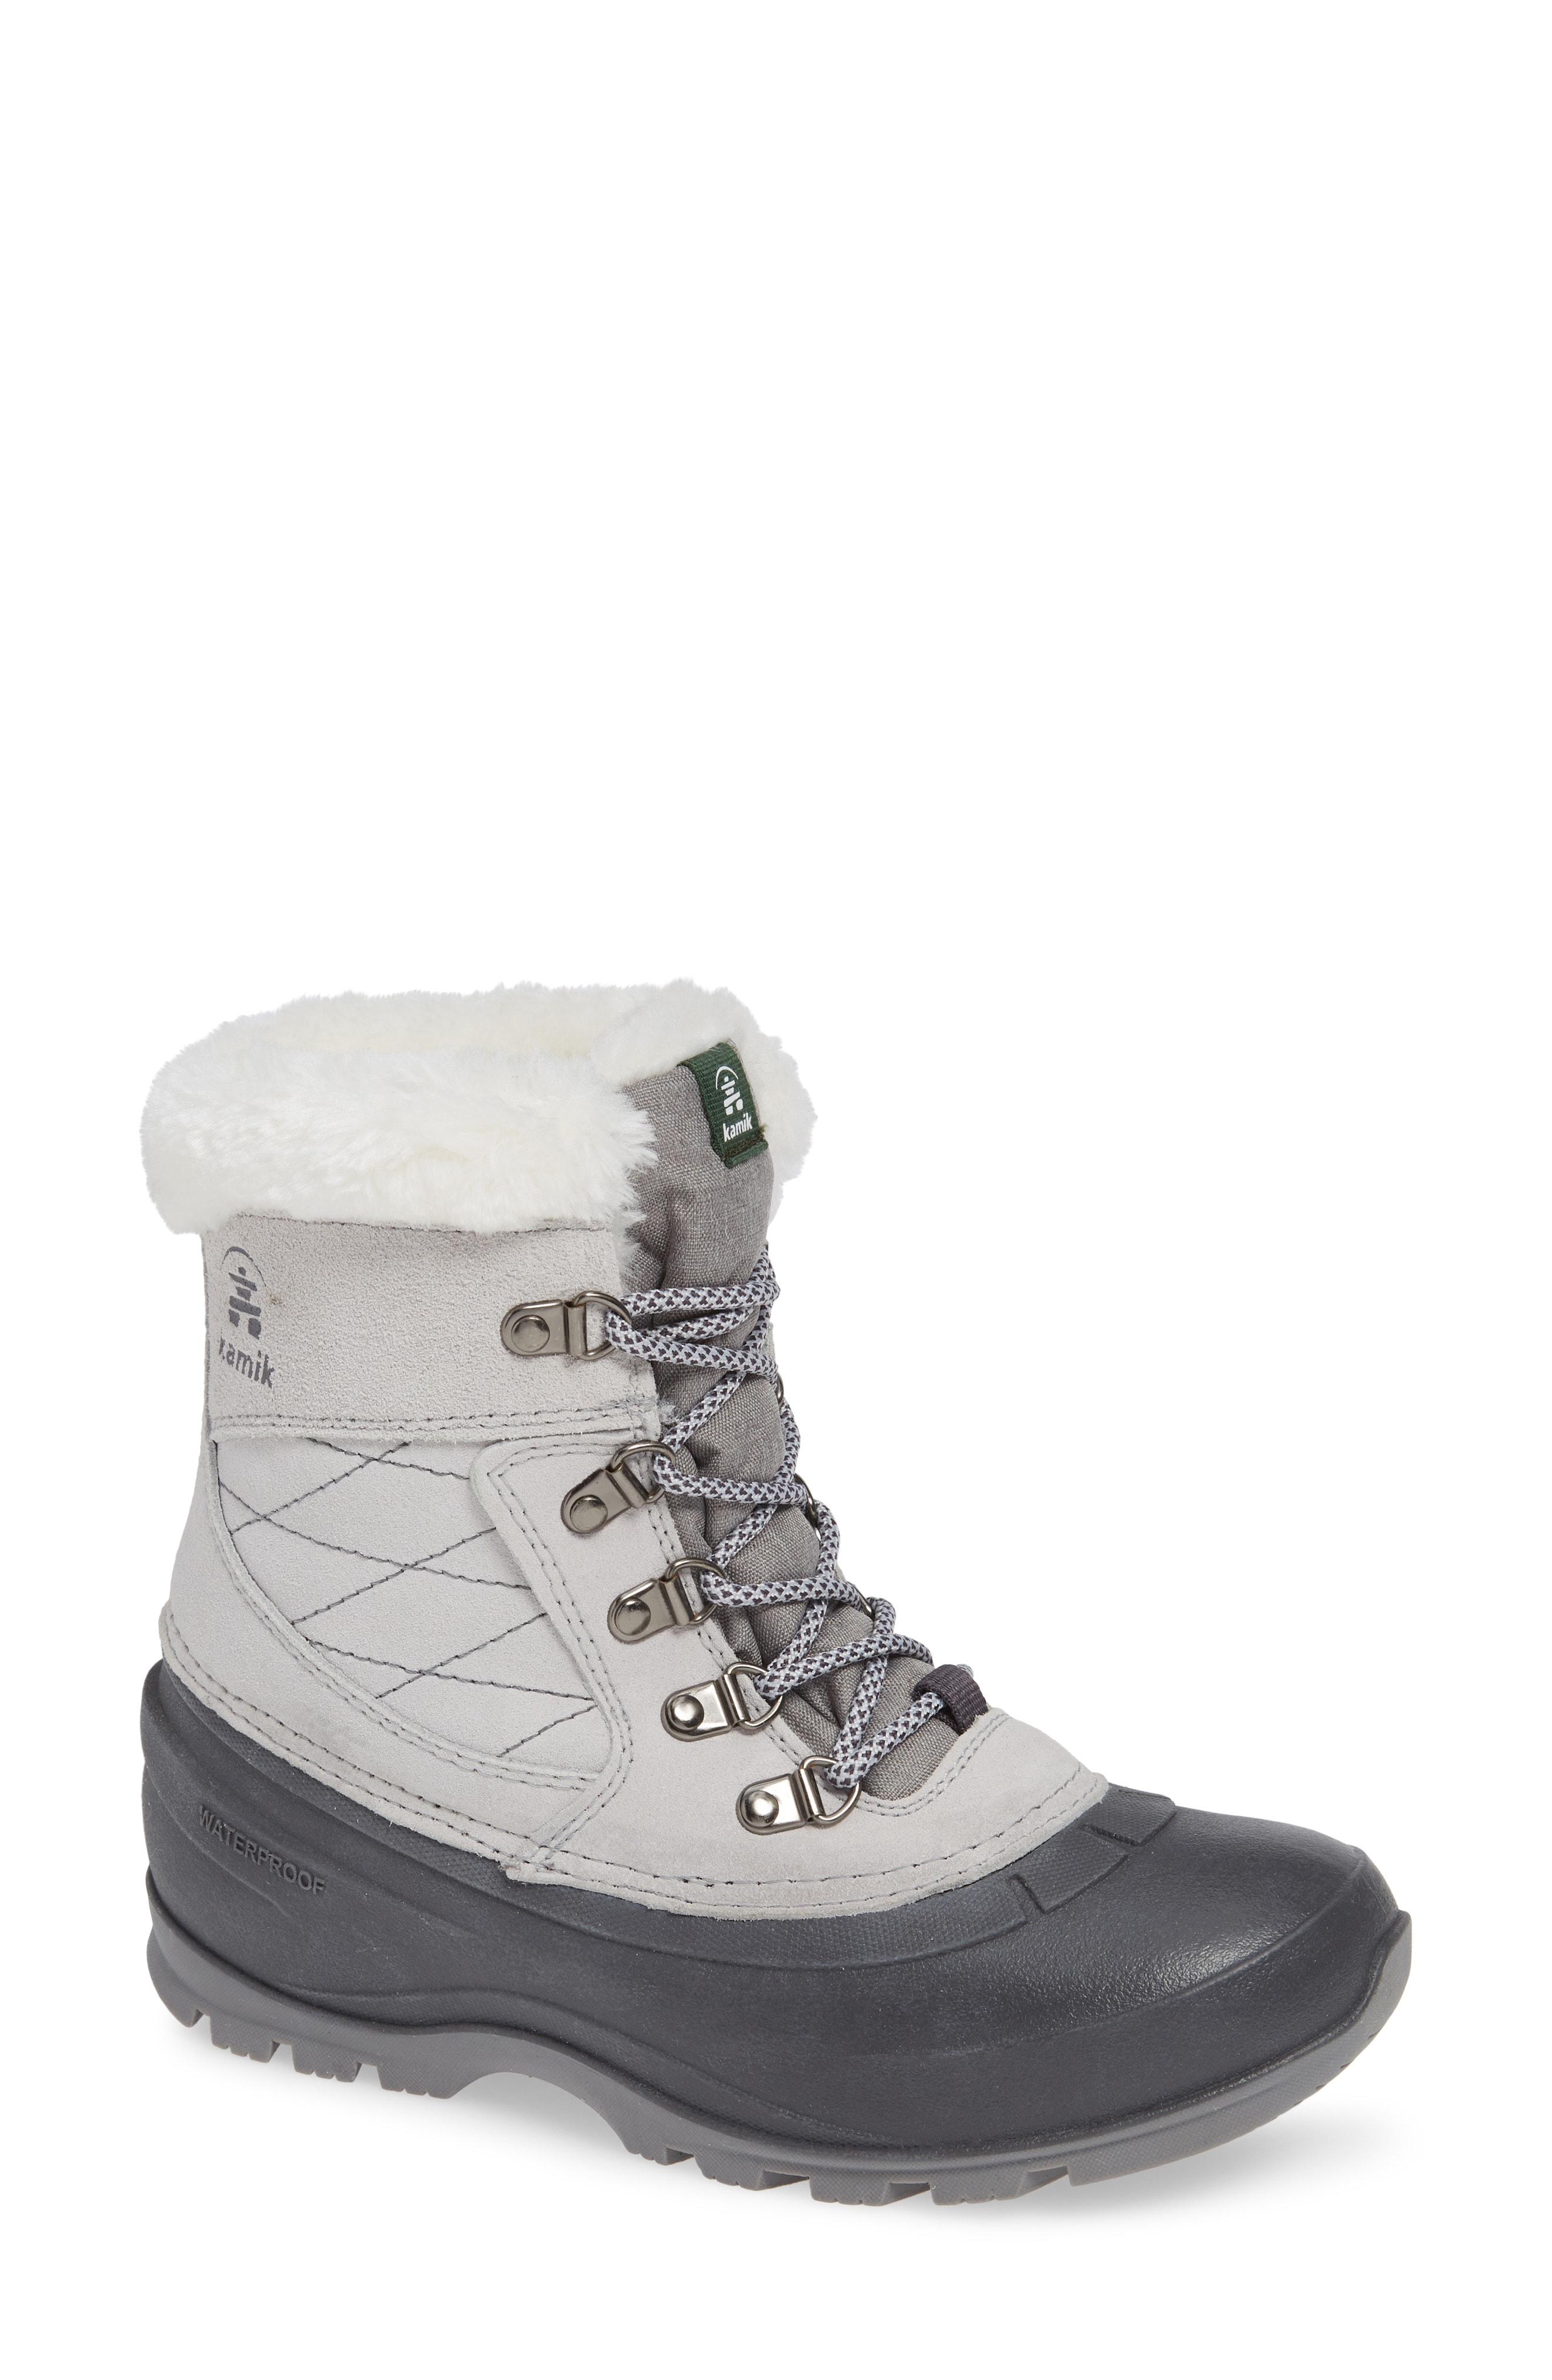 Kamik Snovalley1 Waterproof Thinsulate Insulated Snow Boot (Women)